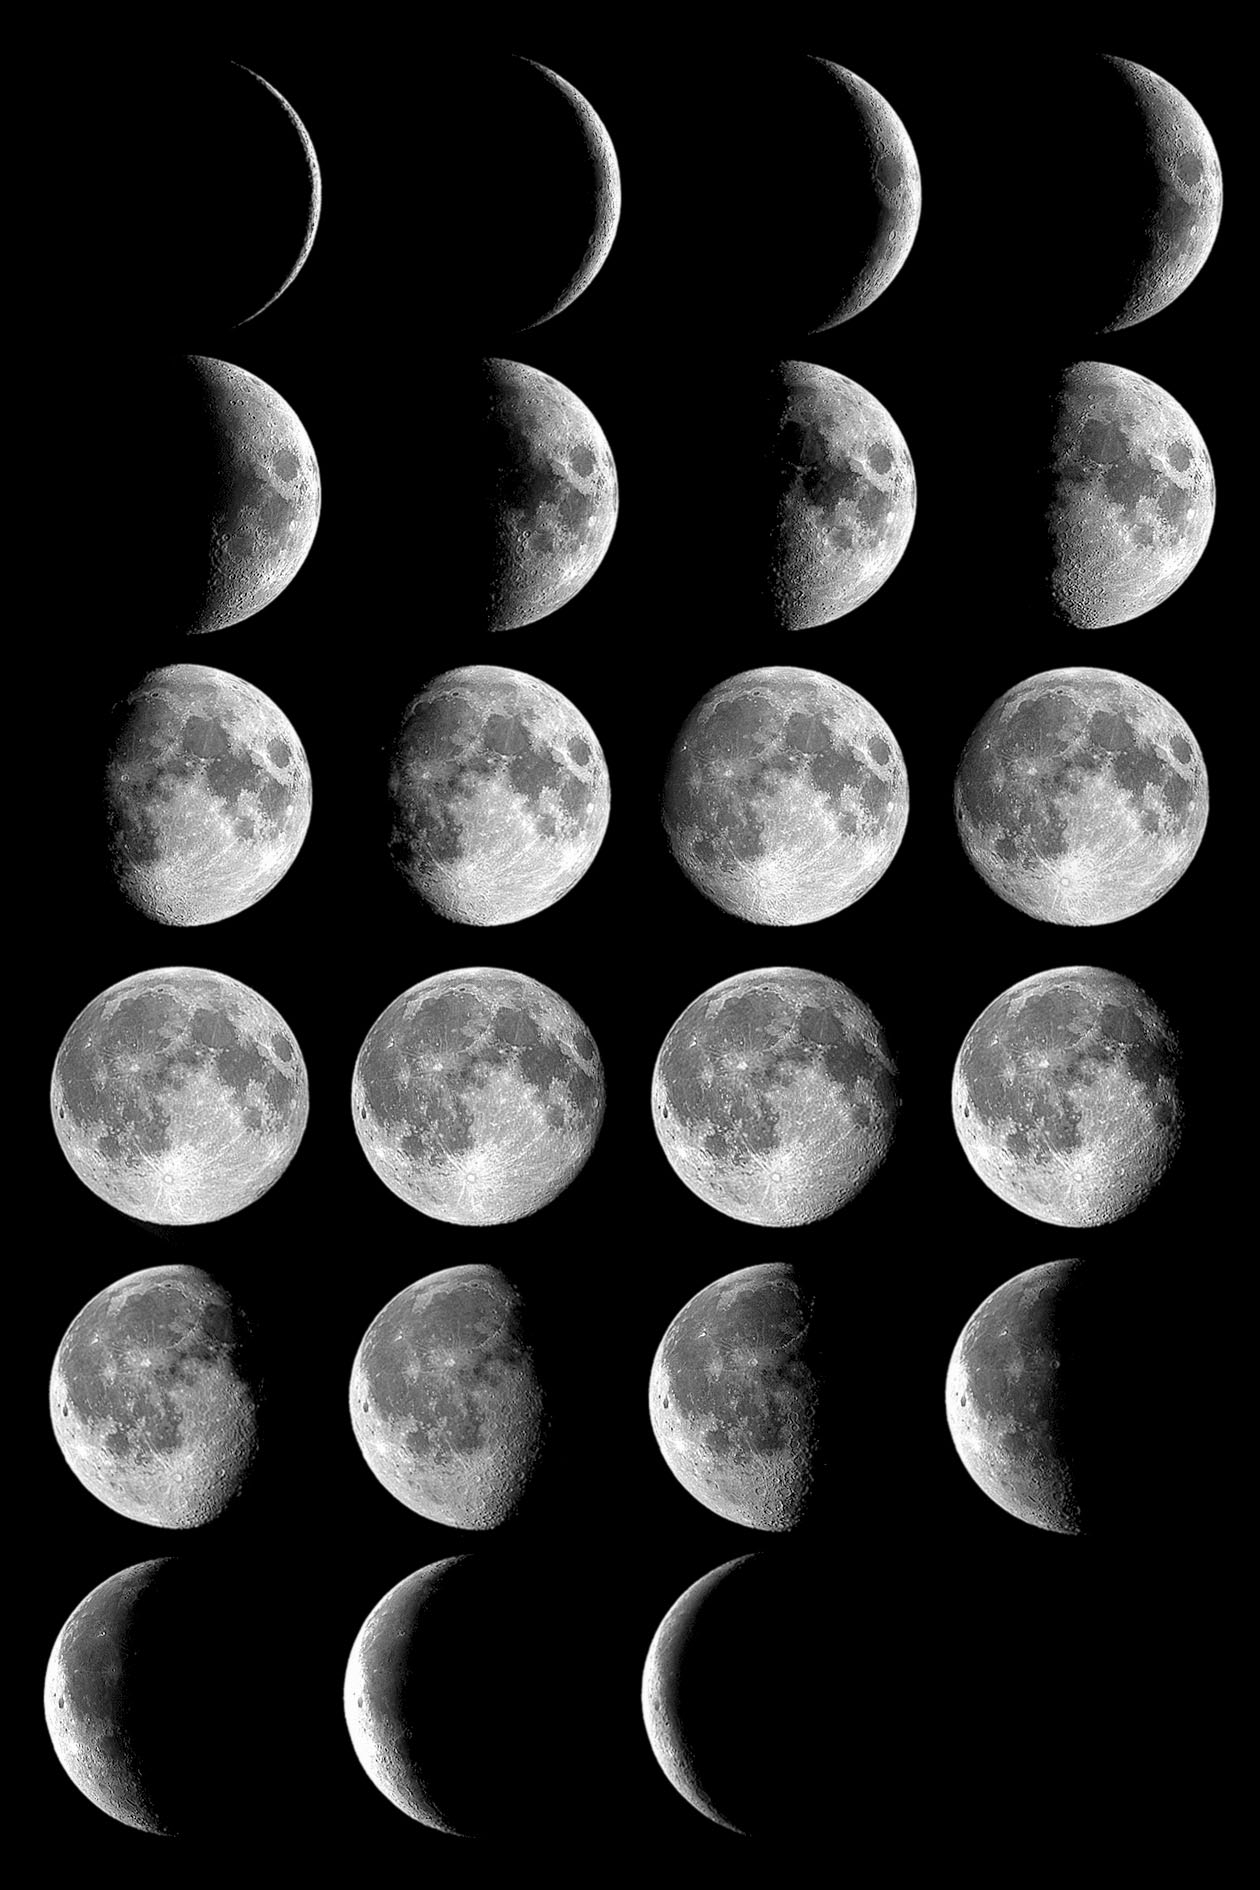 Phases Of The Moon And Percent Of The Moon Illuminated with regard to Phases Of The Moon Over The Month